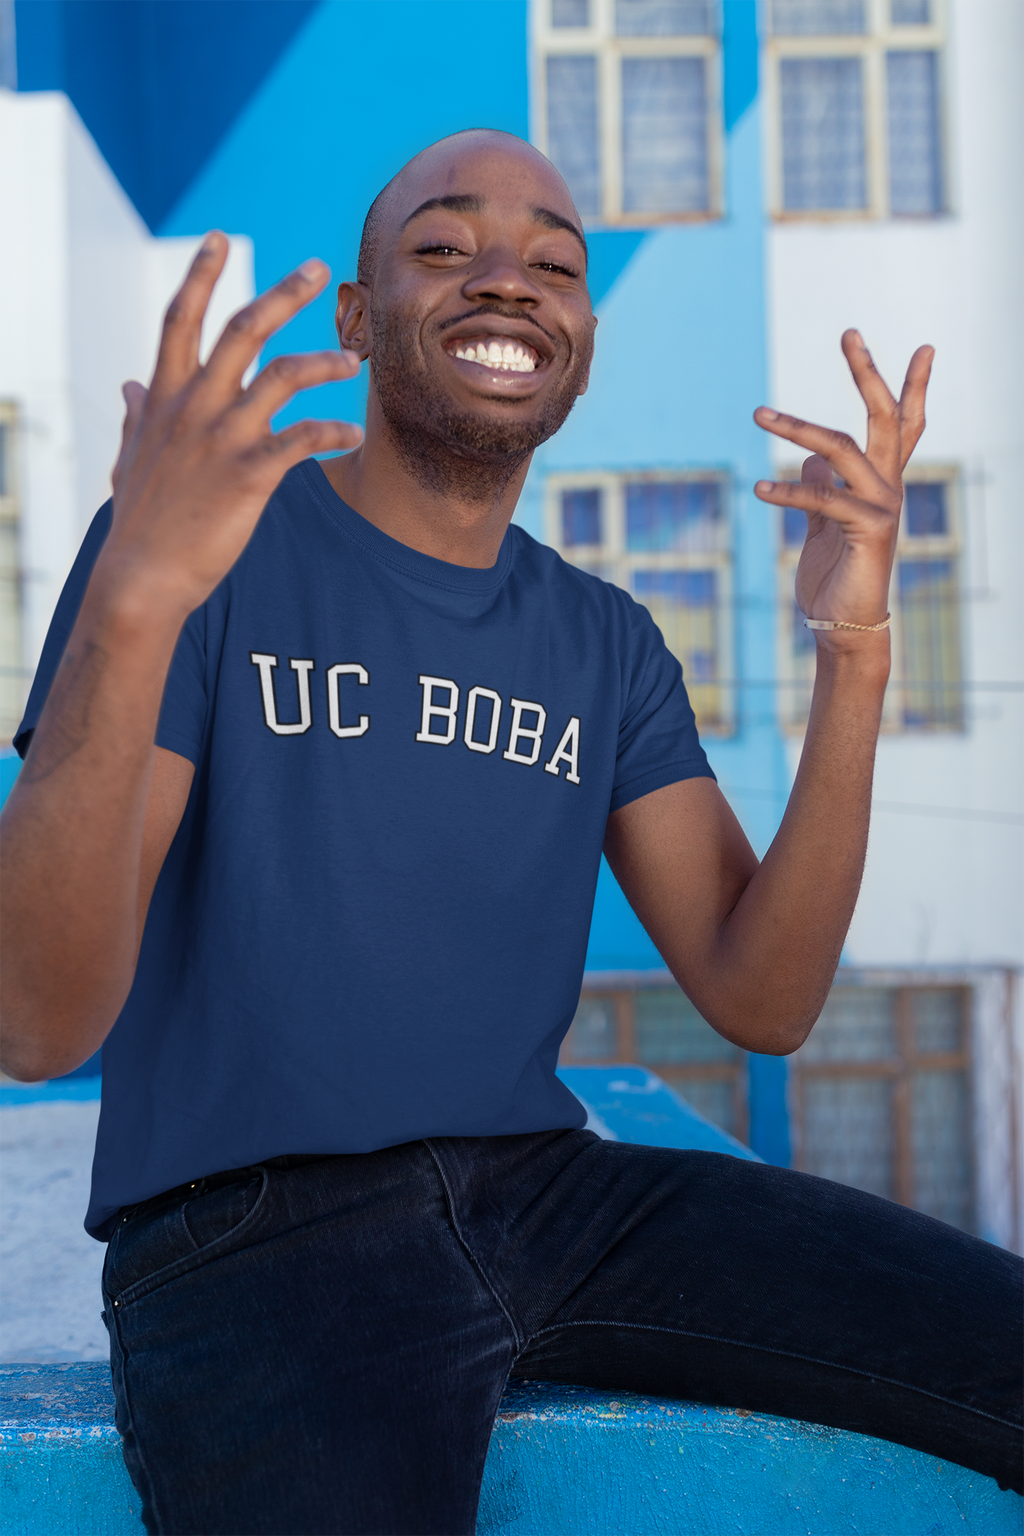 Happy man wearing UC Boba School Shirt